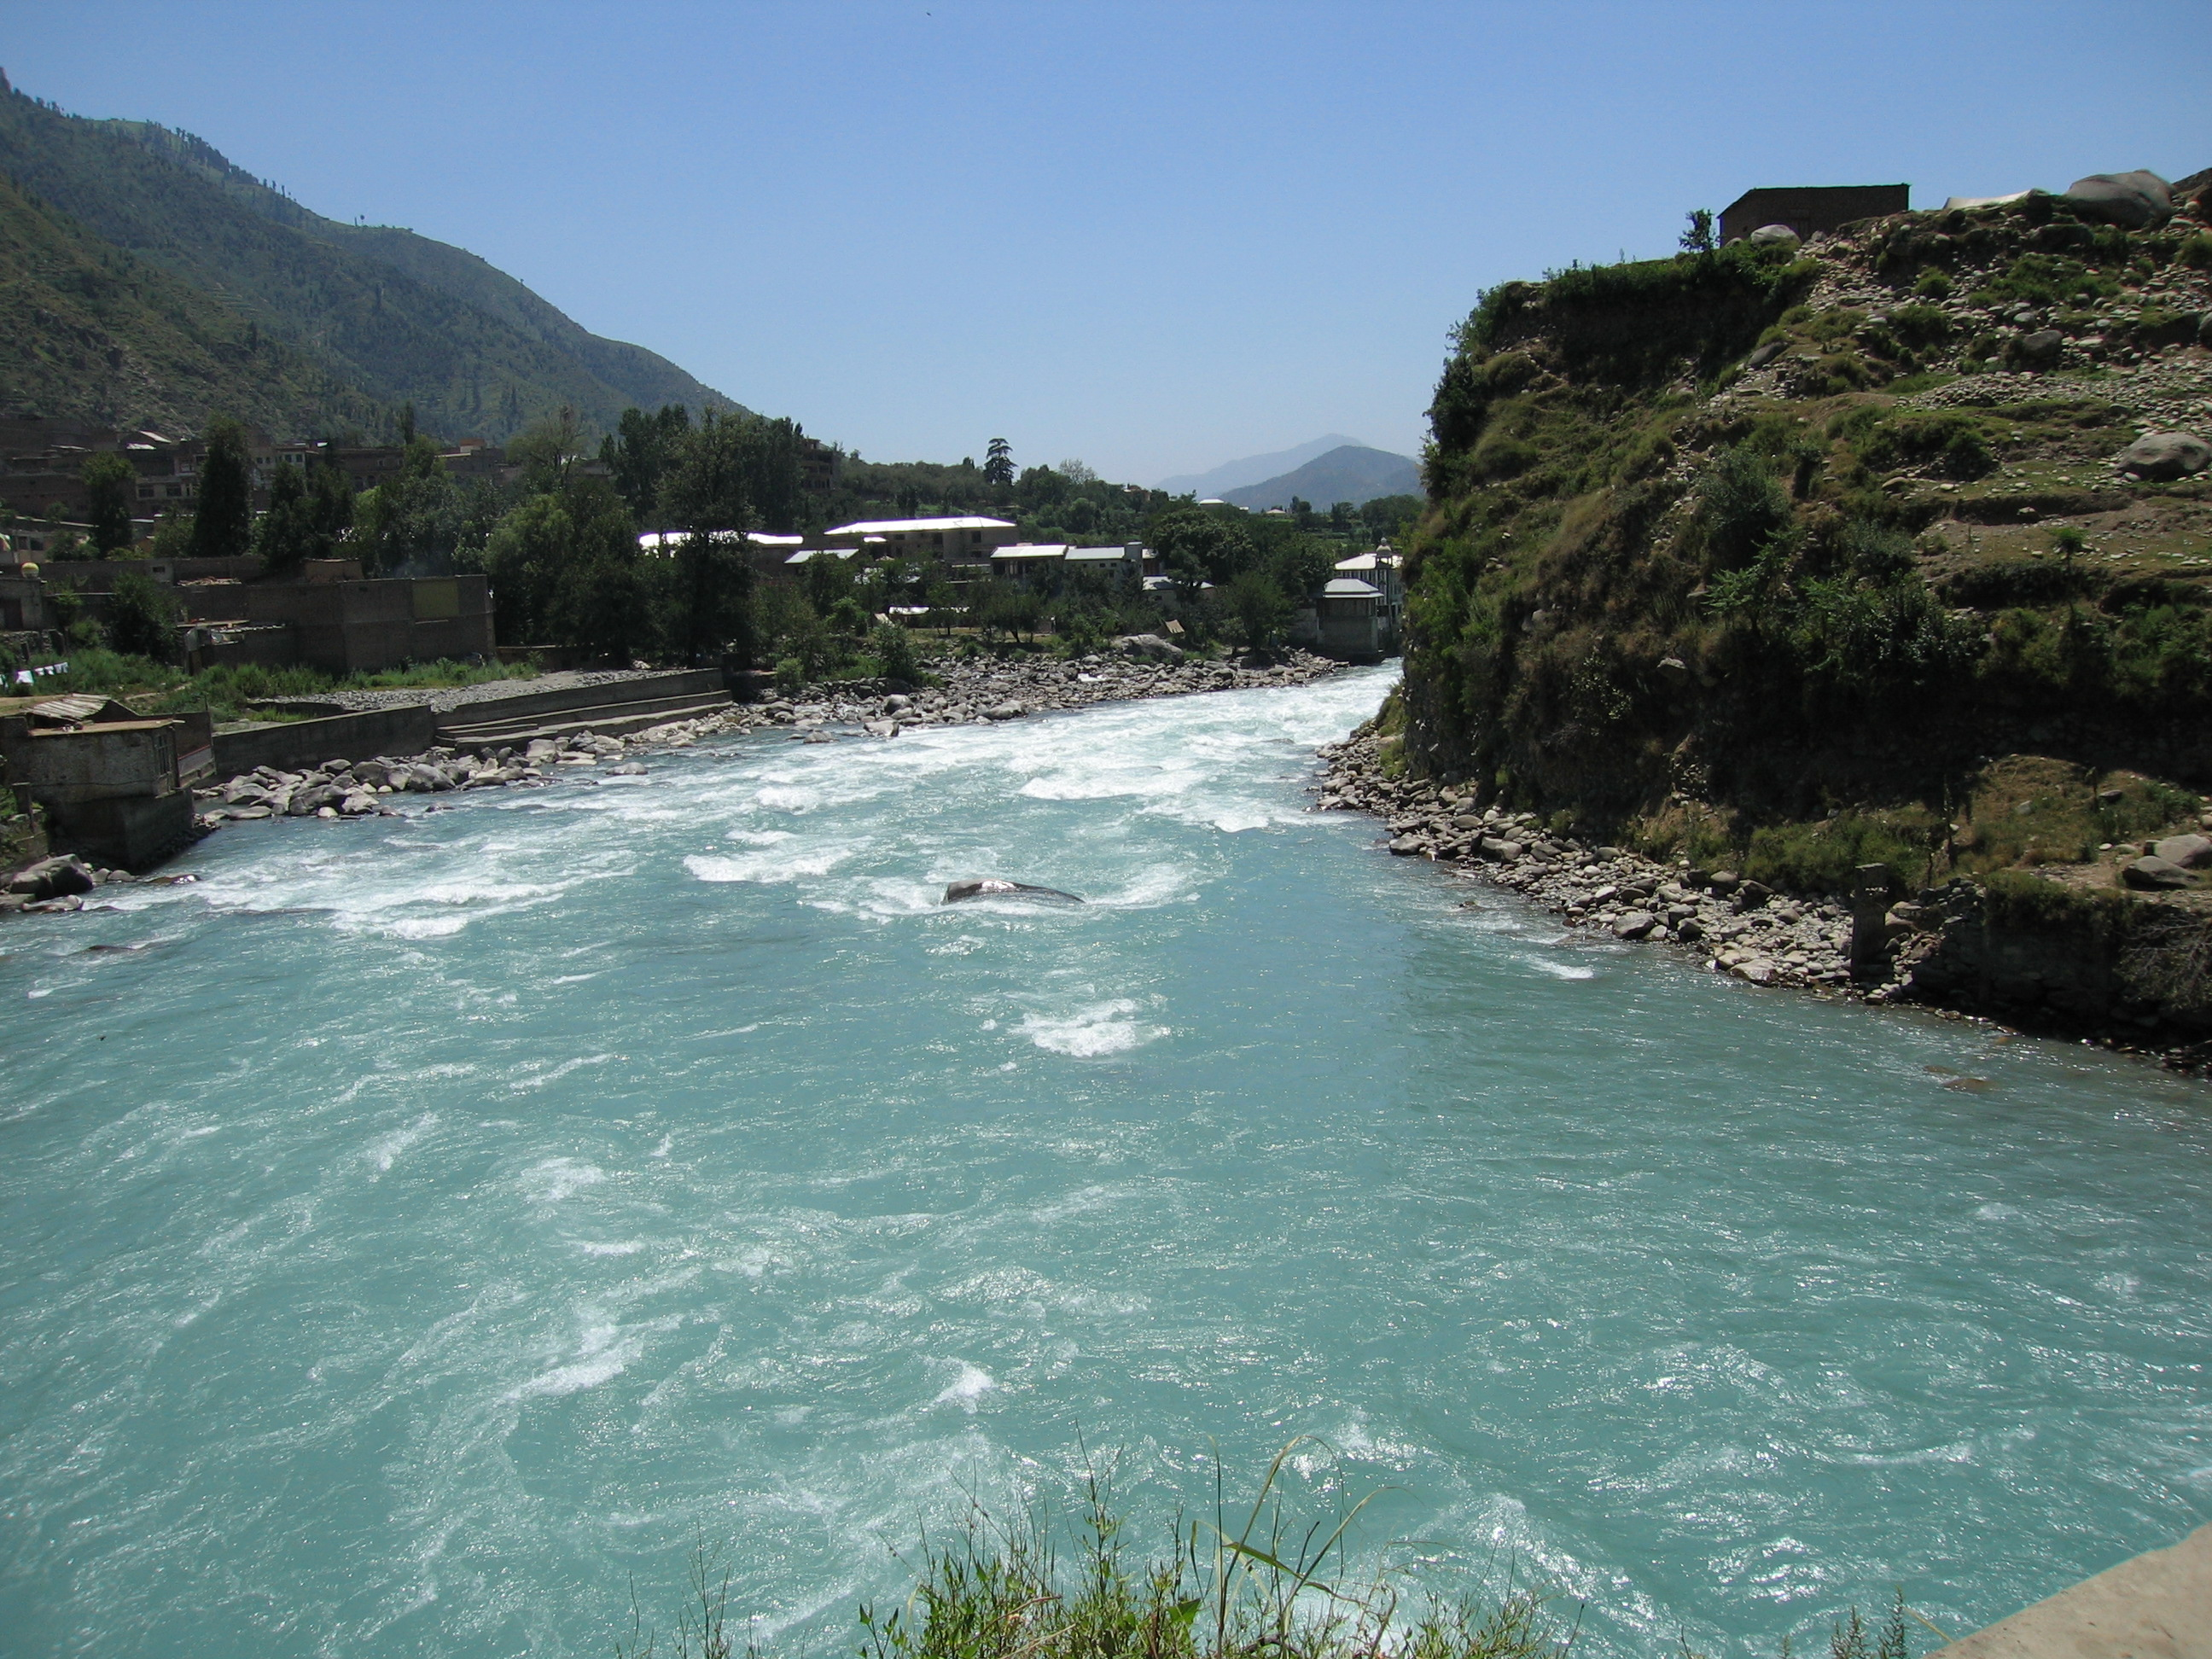 File:Swat River Pakistan.JPG  Wikipedia, the free encyclopedia